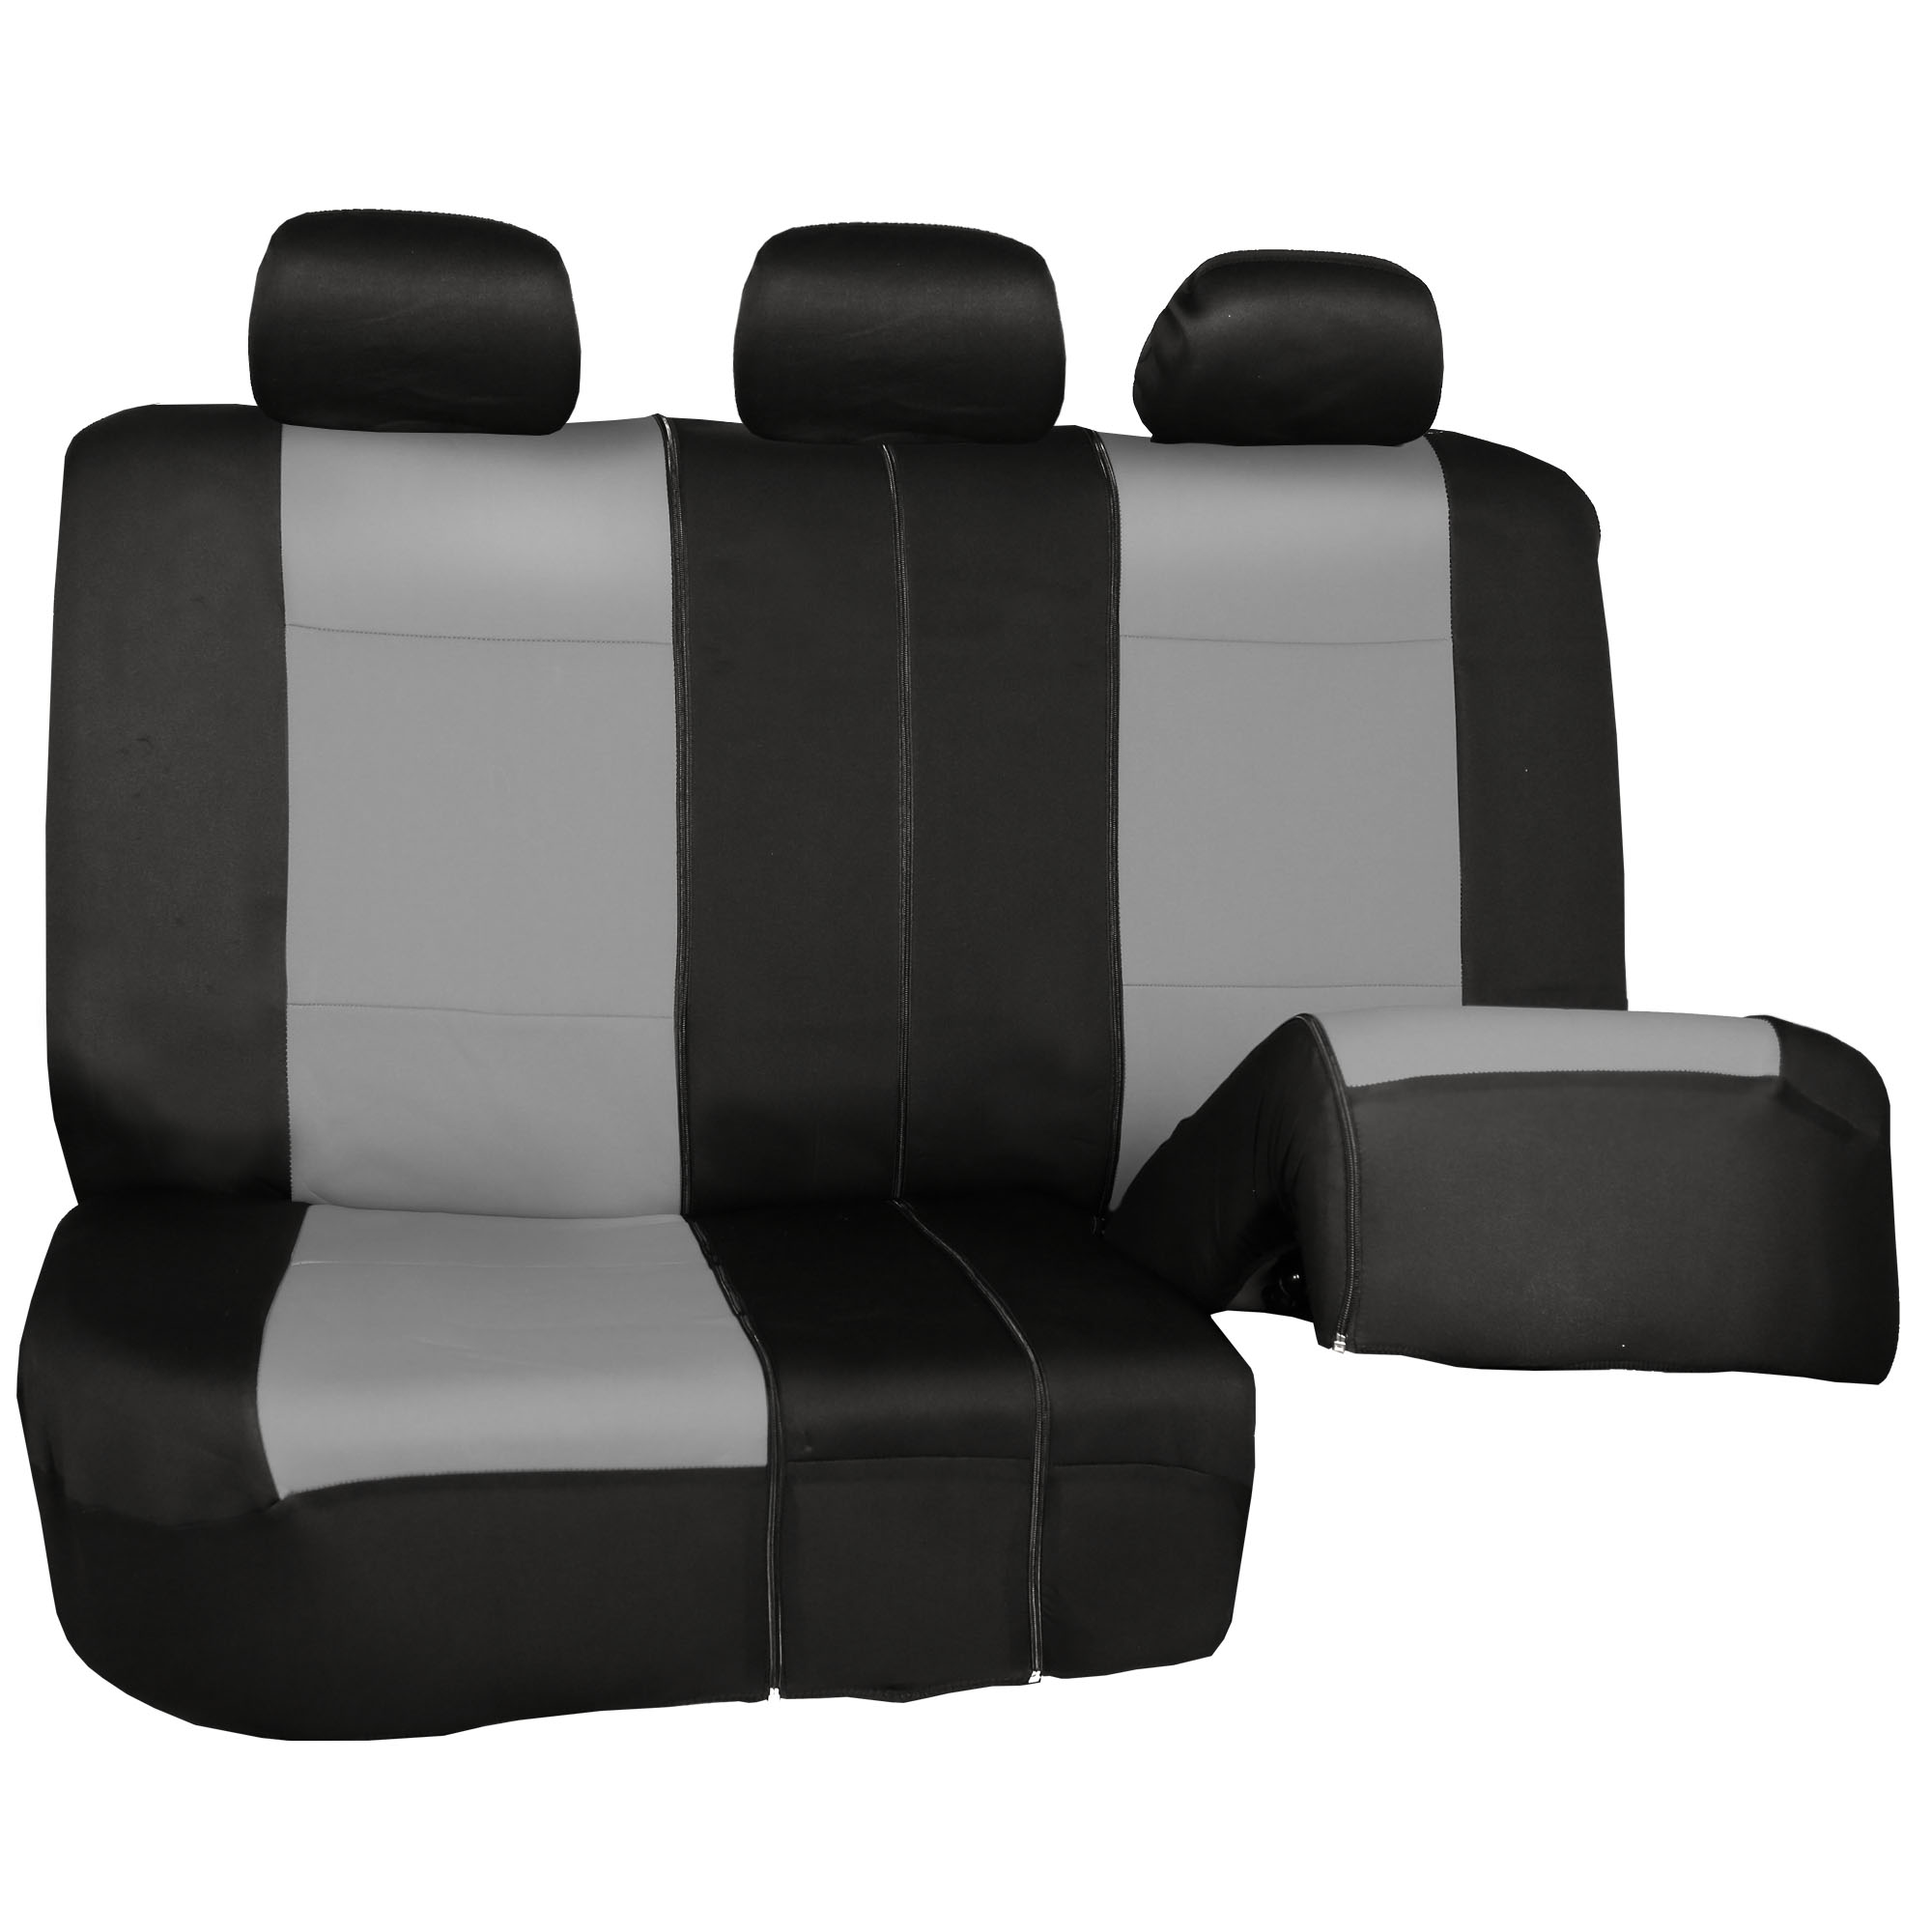 Car-Seat-Cover-Neoprene-Waterproof-Pet-Proof-Full-Set-Cover-With-Dash-Pad thumbnail 37